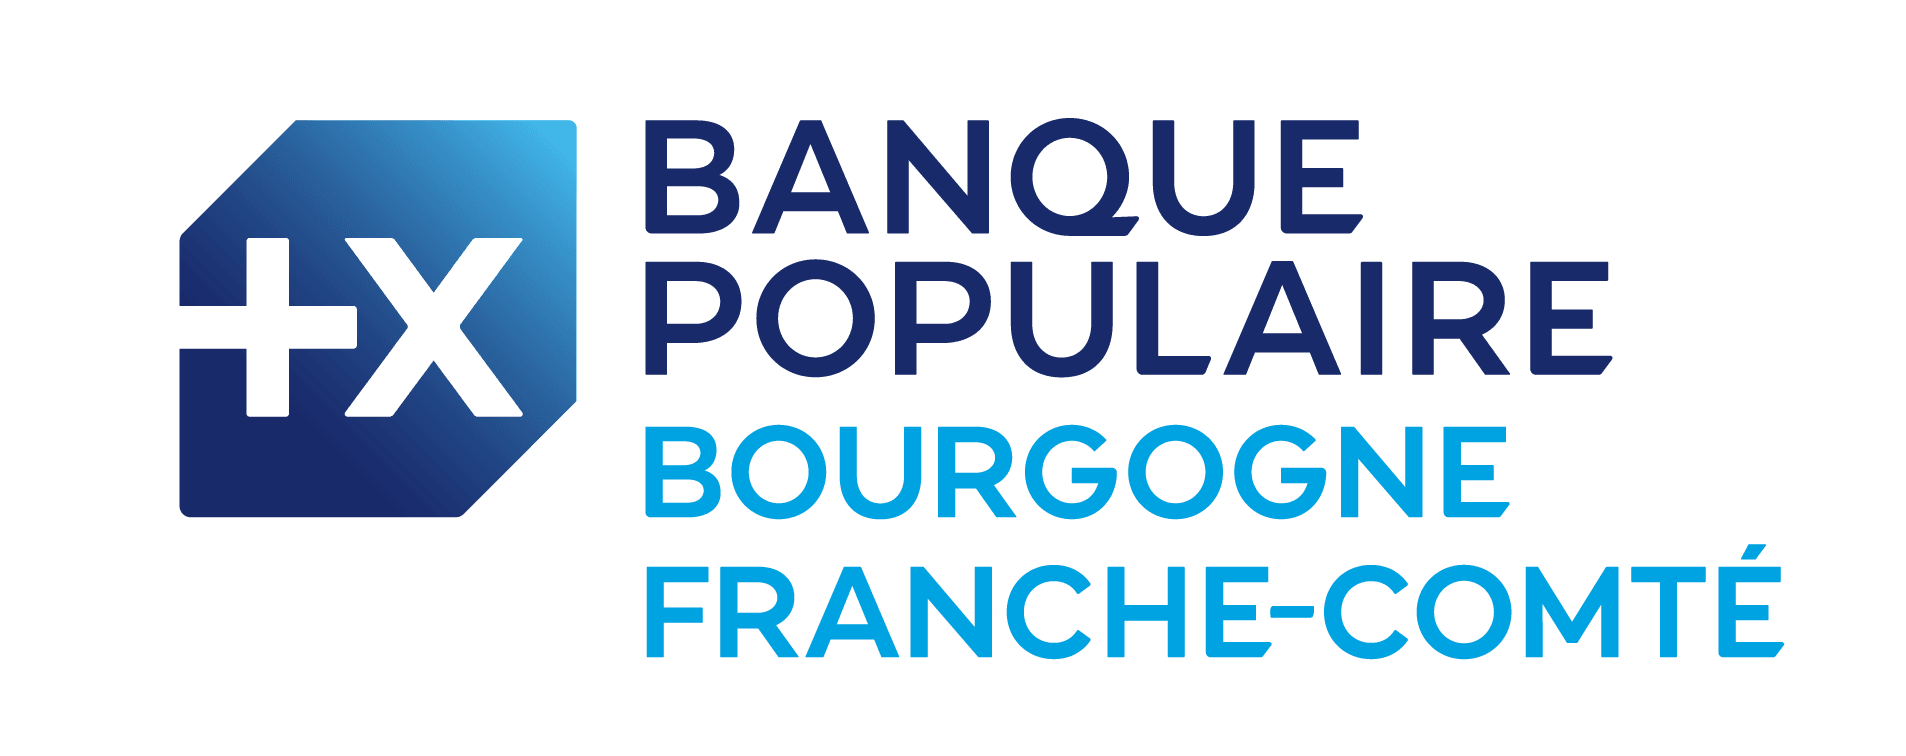 banque_populaire_bfc.png